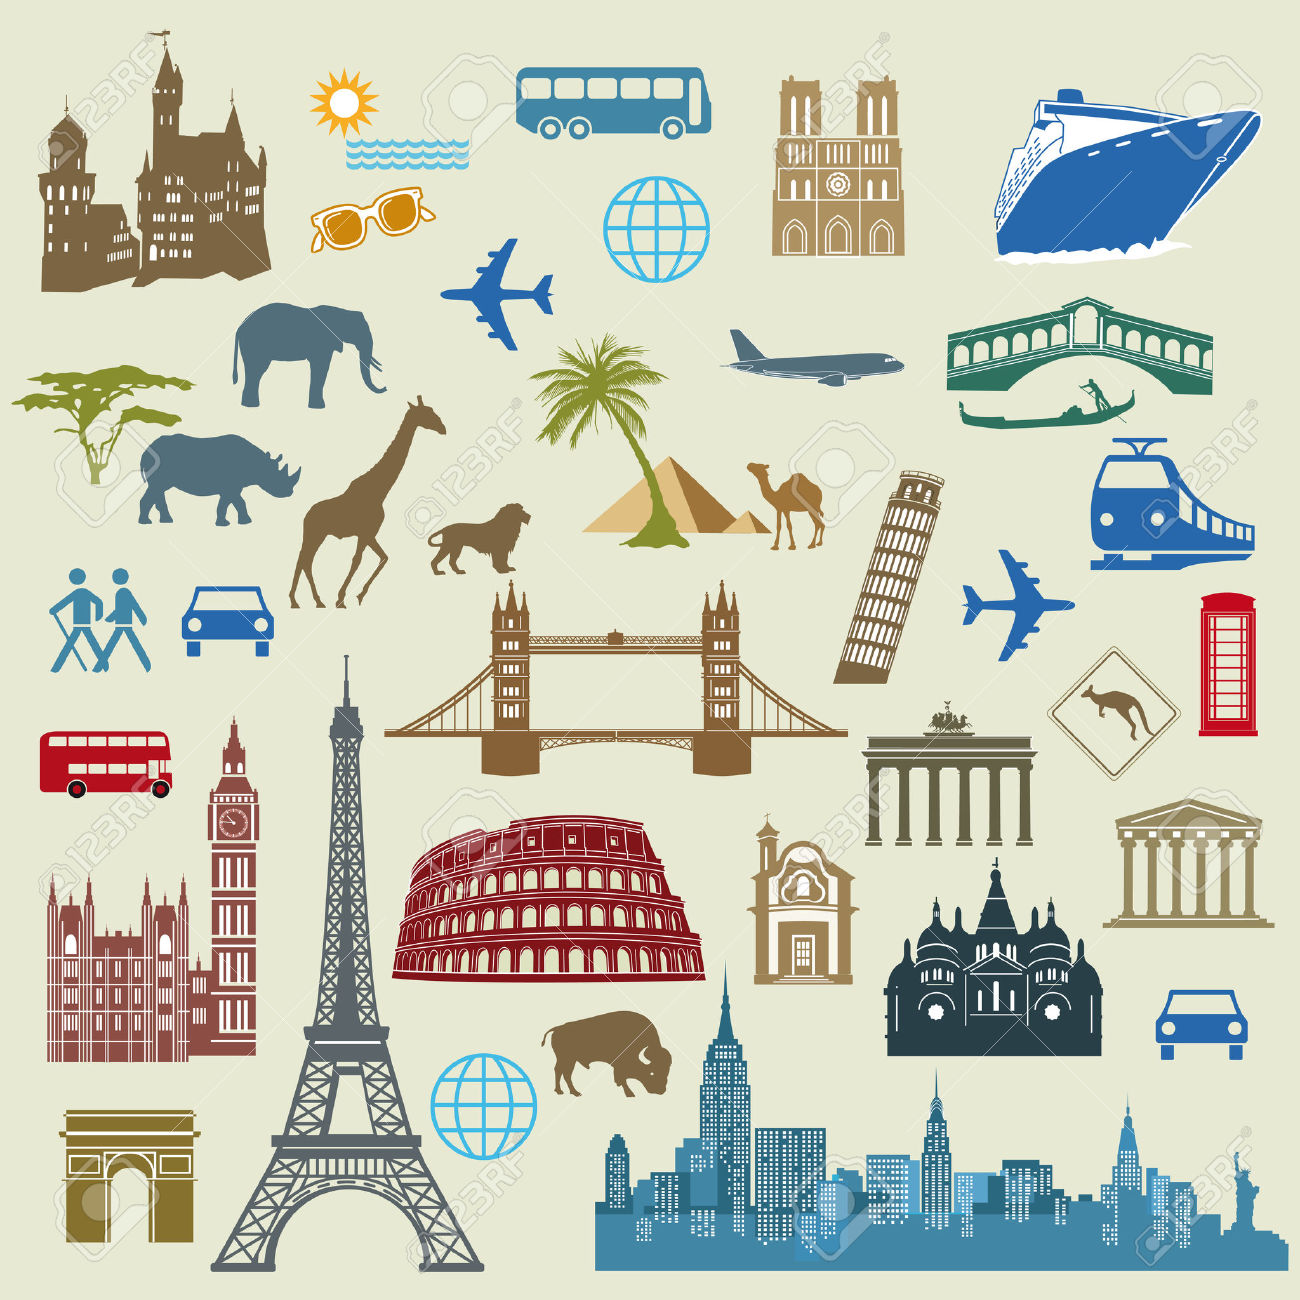 World Travel, Famous International Landmarks Royalty Free Cliparts.